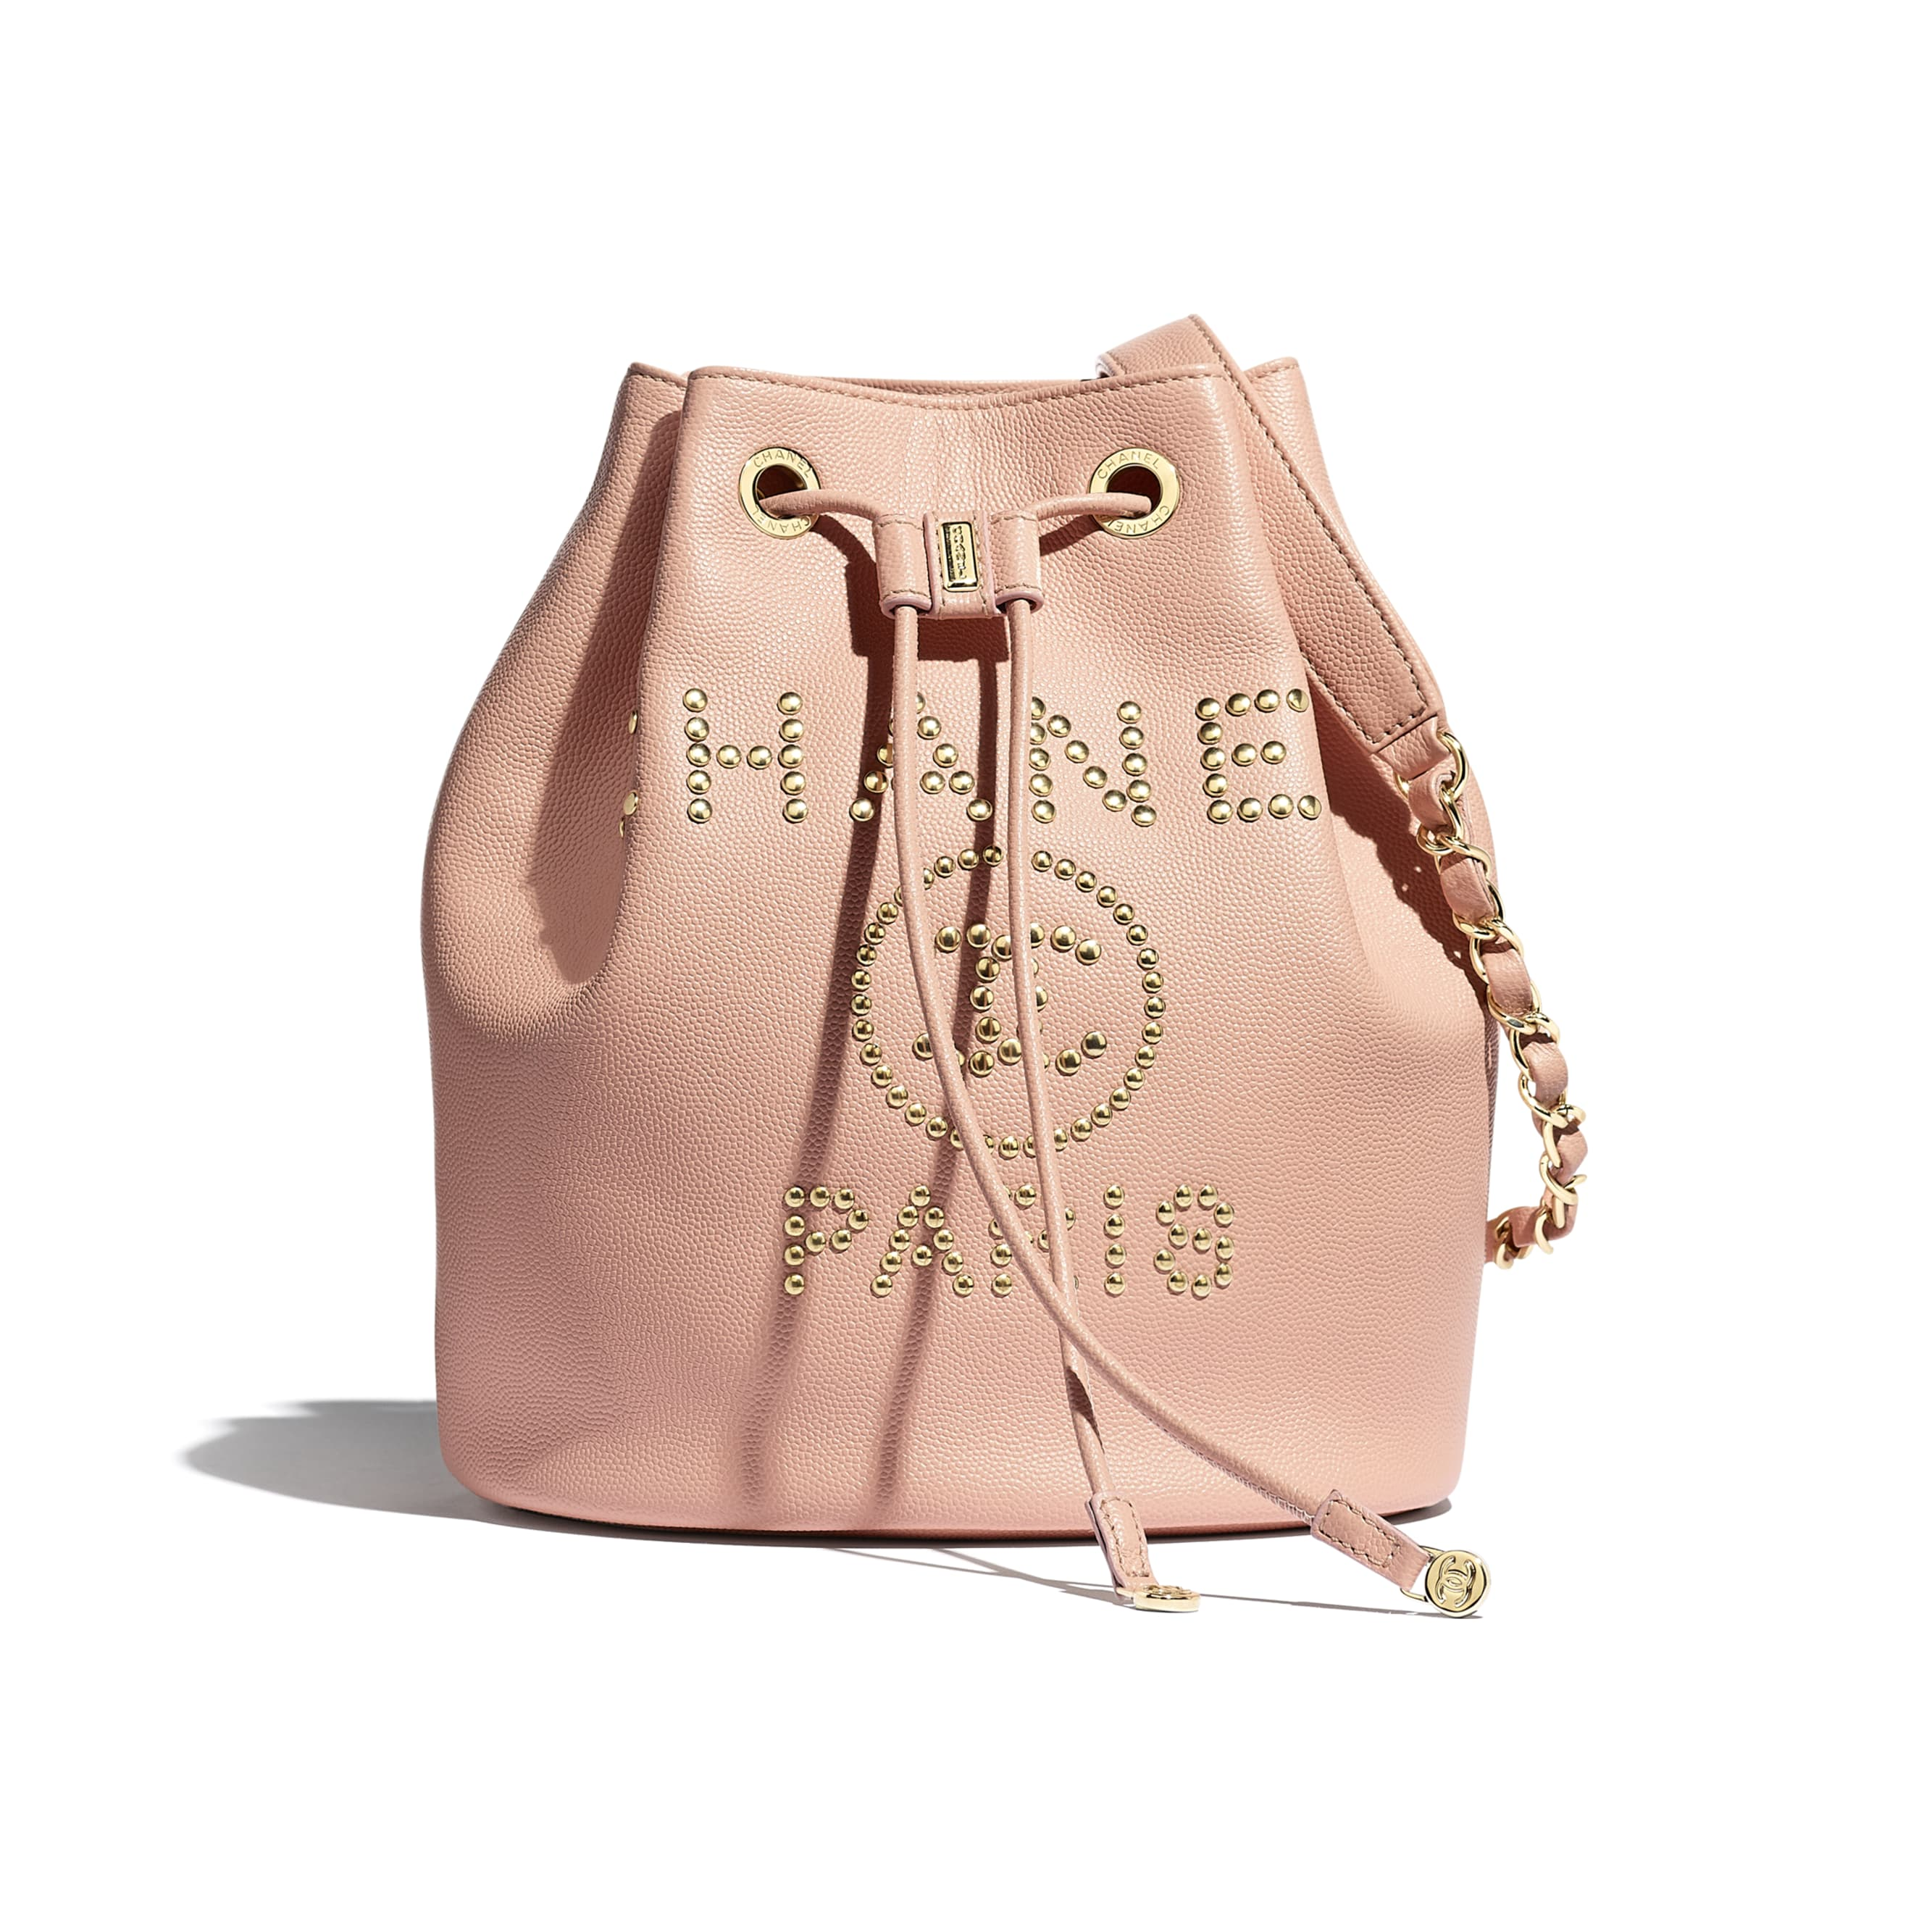 Small Drawstring Bag - Light Pink - Grained Calfskin, Studs & Gold-Tone Metal - CHANEL - Default view - see standard sized version